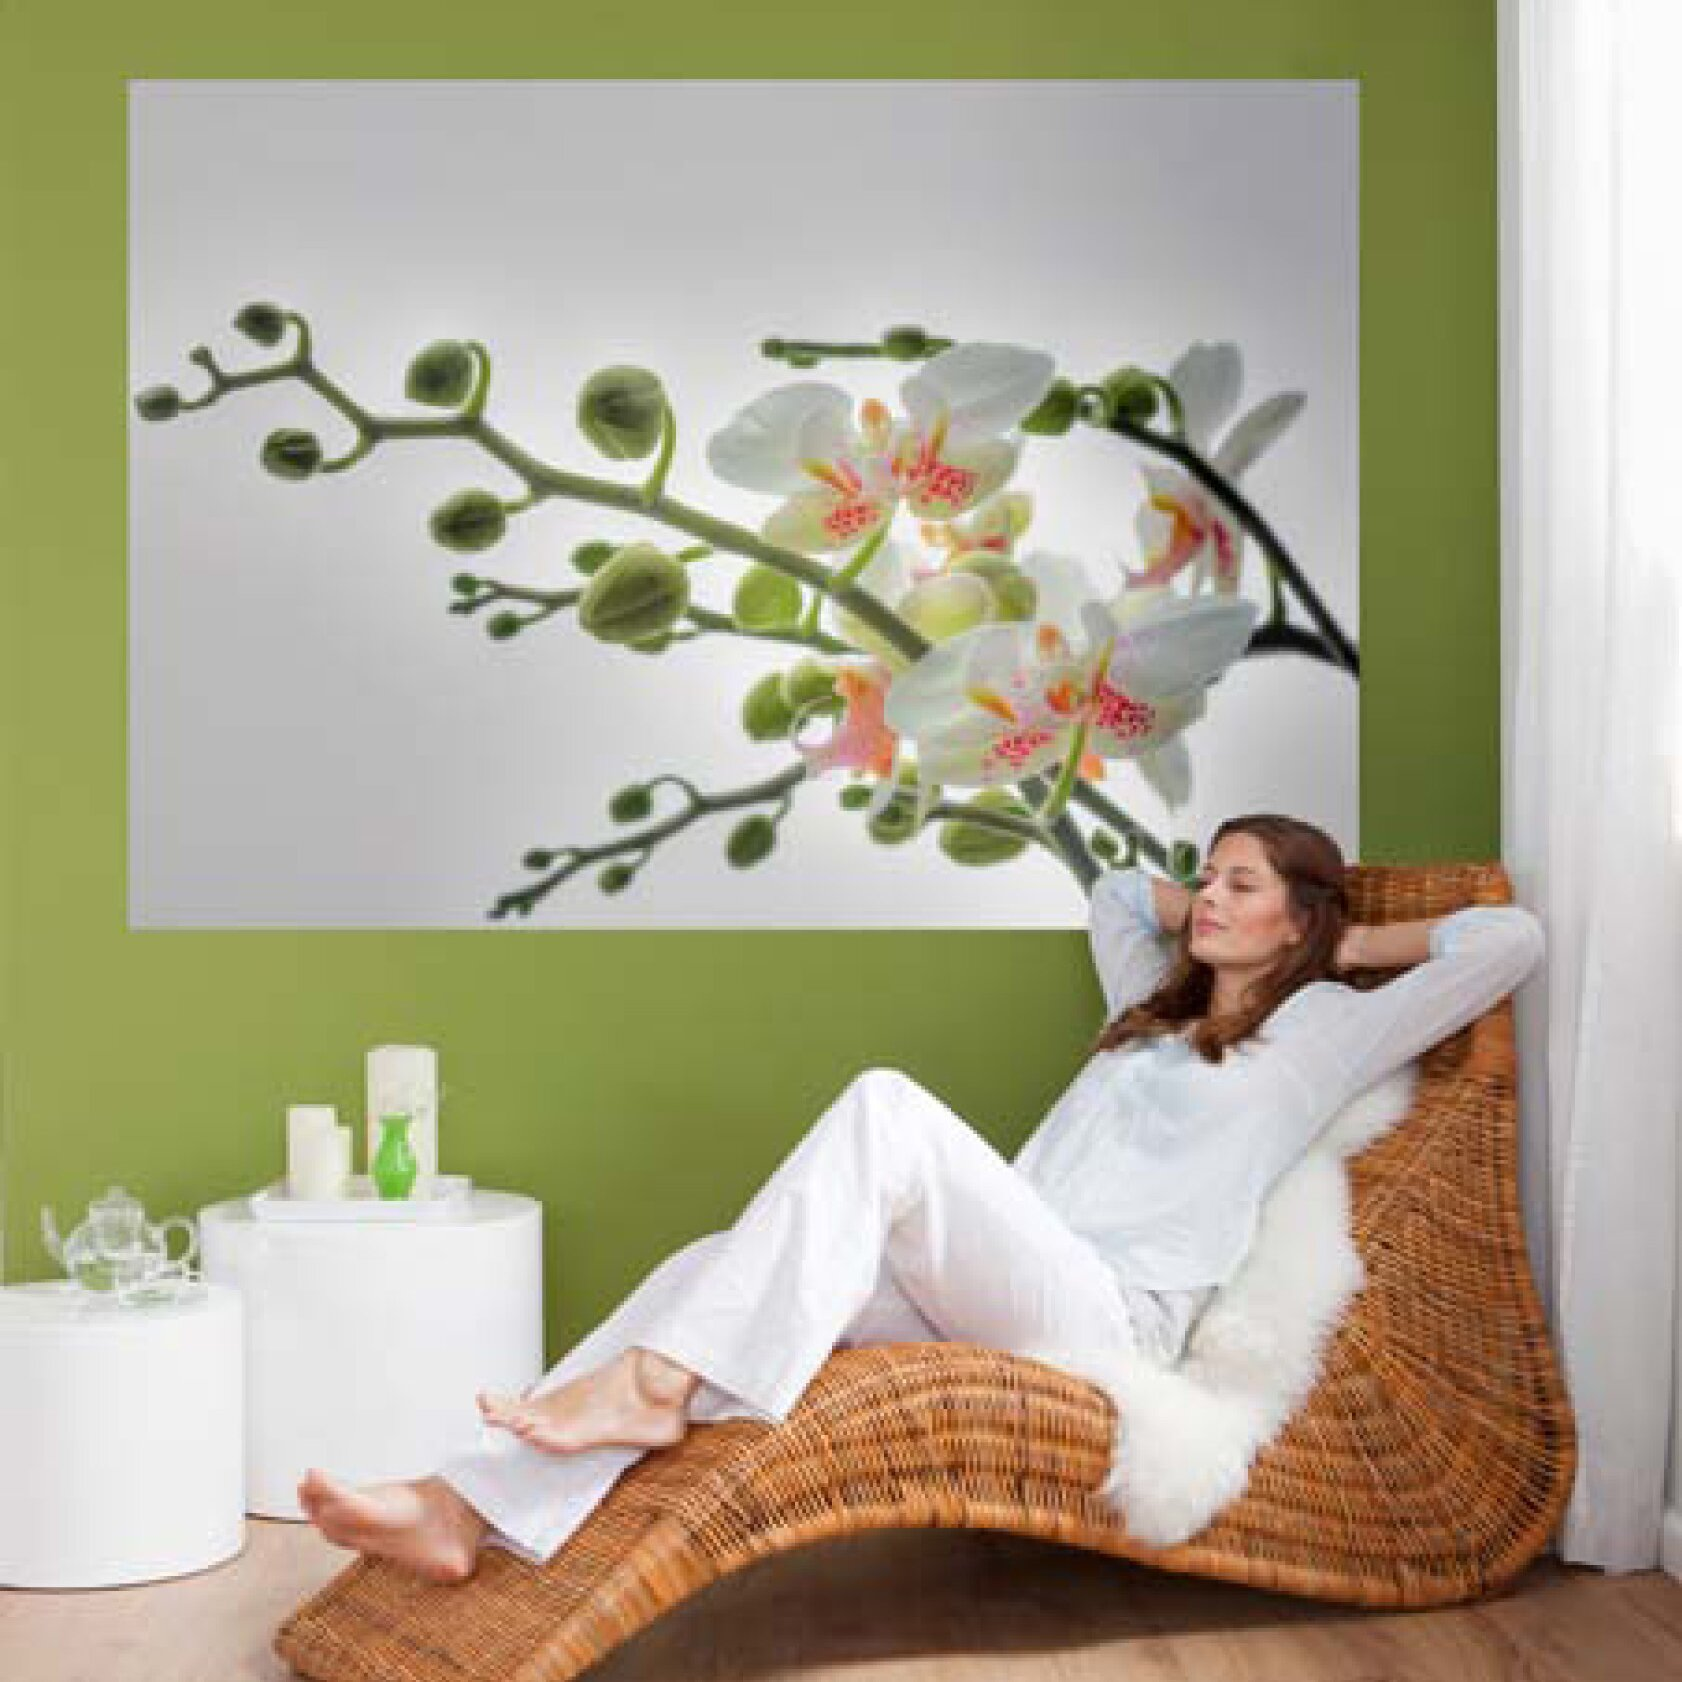 Brewster home fashions komar orchidee wall mural reviews for Brewster home fashions wall mural